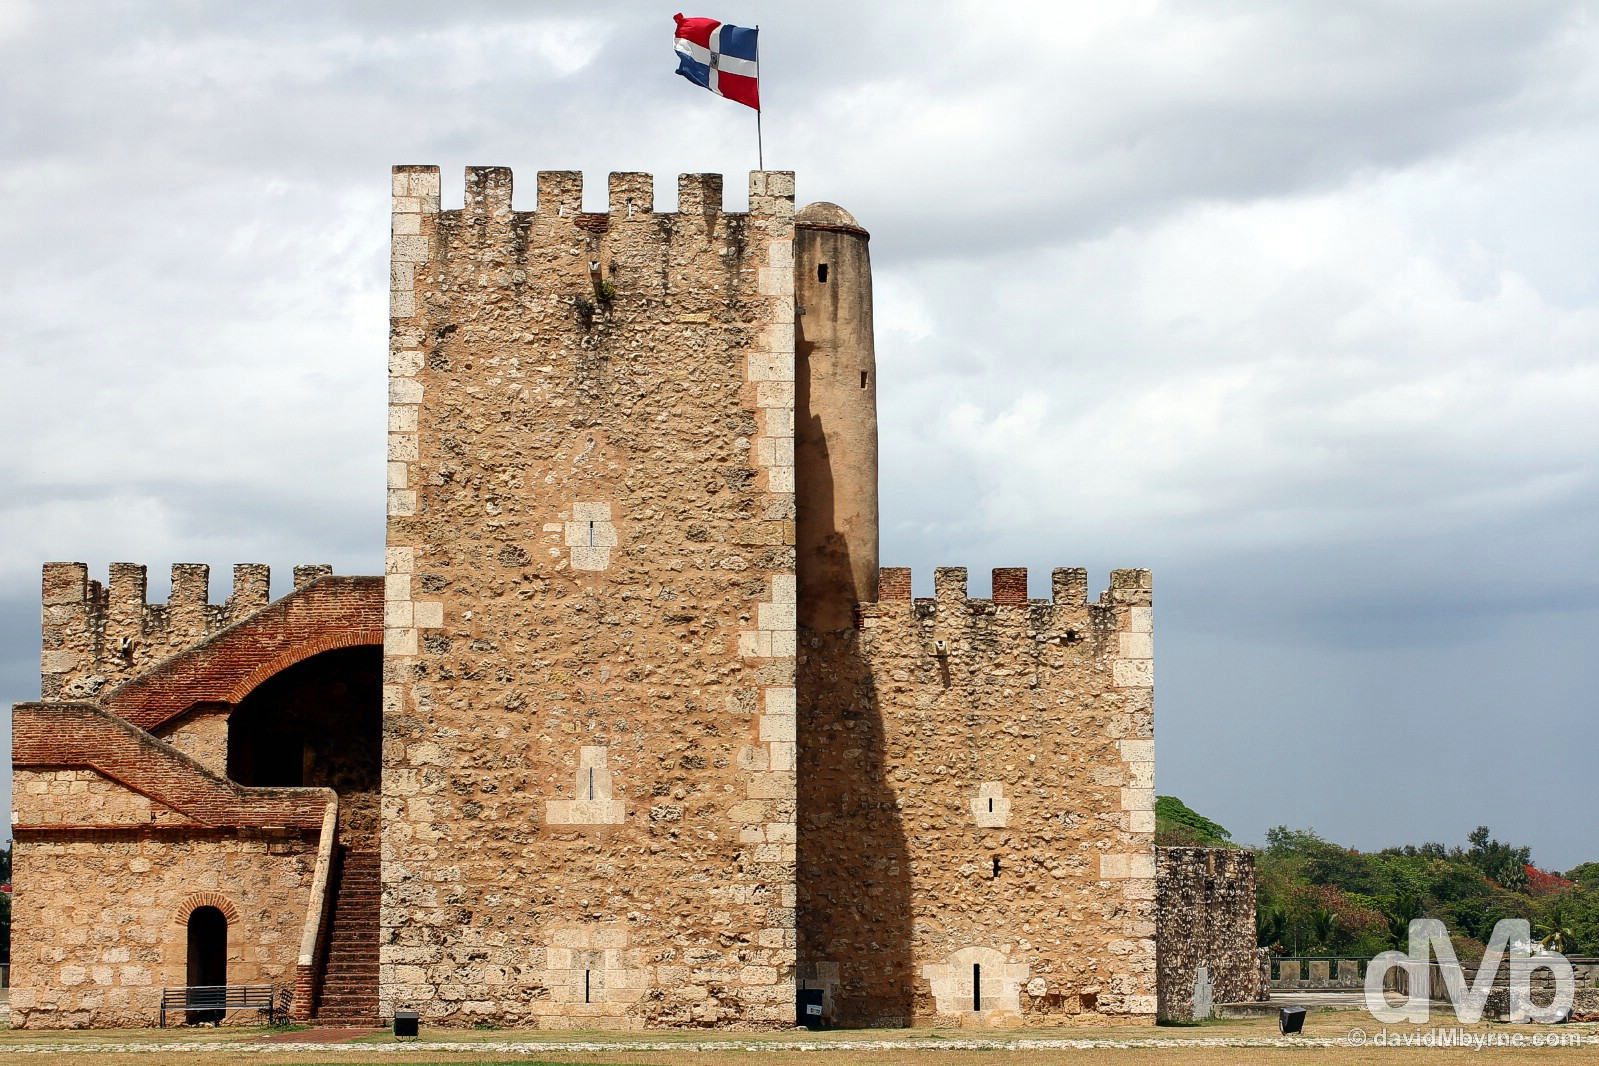 Torre del Homenaje (Tower of Homage) in Fortaleza Ozama (Ozama Fortress), Santo Domingo, Dominican Republic. May 26, 2015.